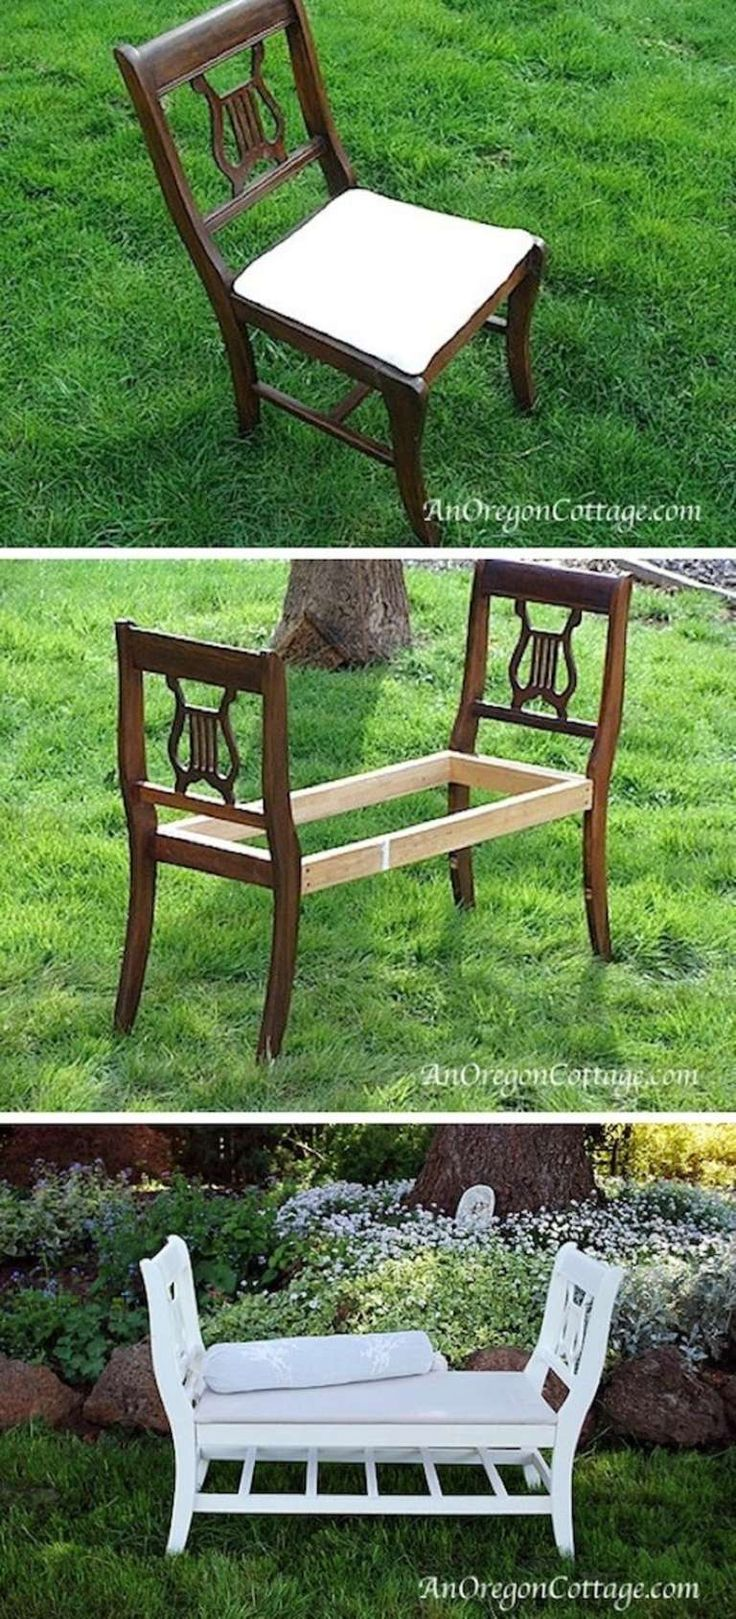 Turn Your Old Dining Room Chairs Into A Bench! + more clever hacks!